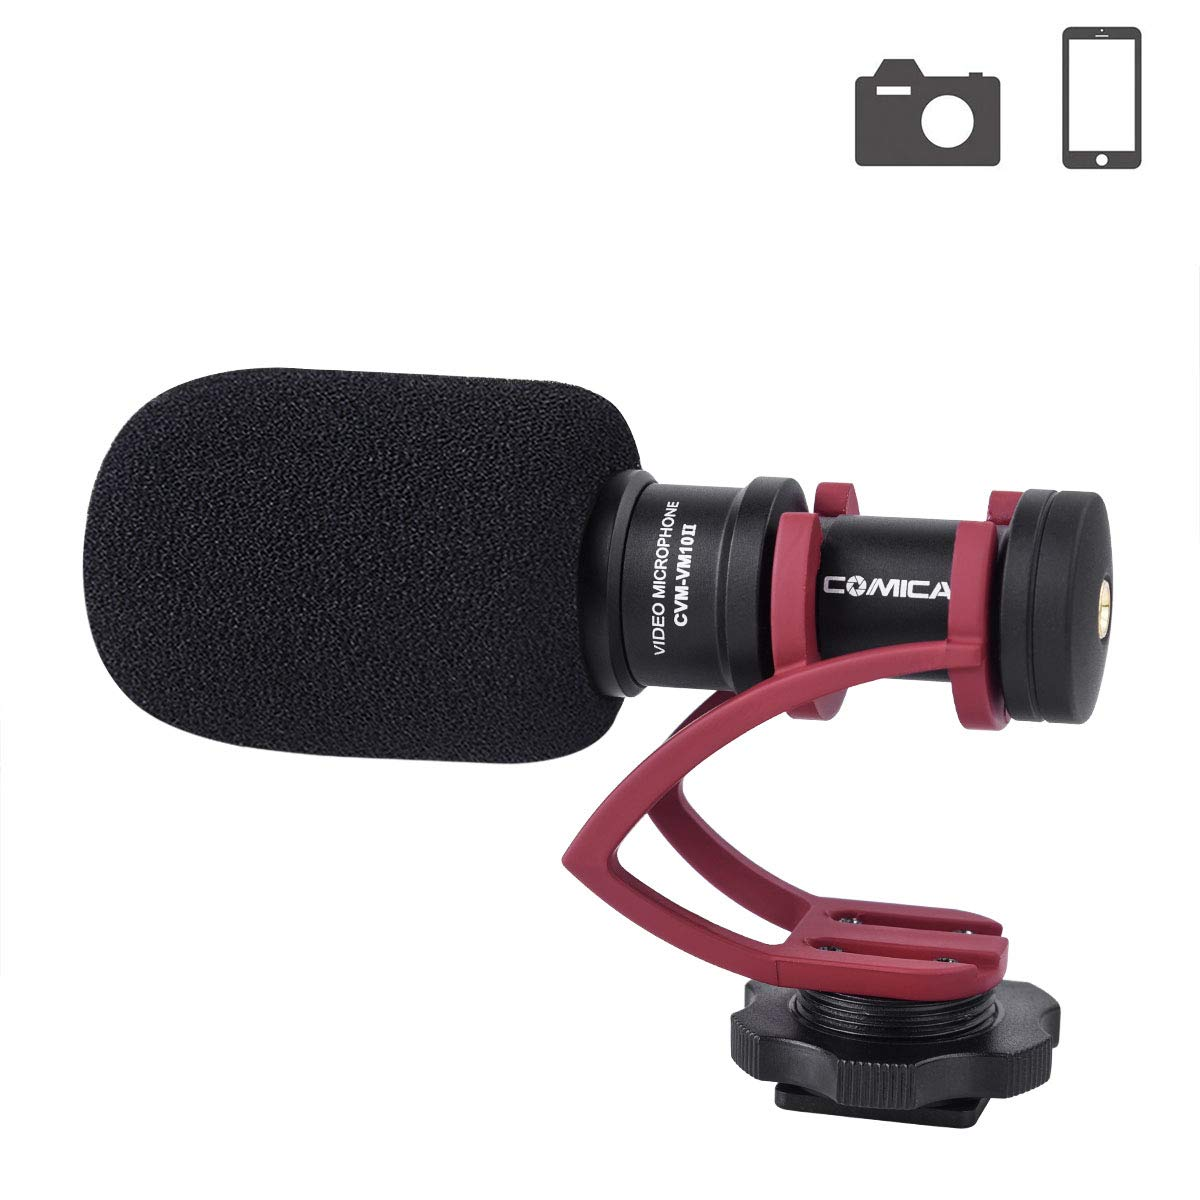 Comica CVM-VS08 Microphone for Smartphone,Cardioid Condenser Directional Shotgun Video iPhone Microphone for Phone,iPad,LG//Huawei Android Smartphone with Wind Muff 3.5mm Jack